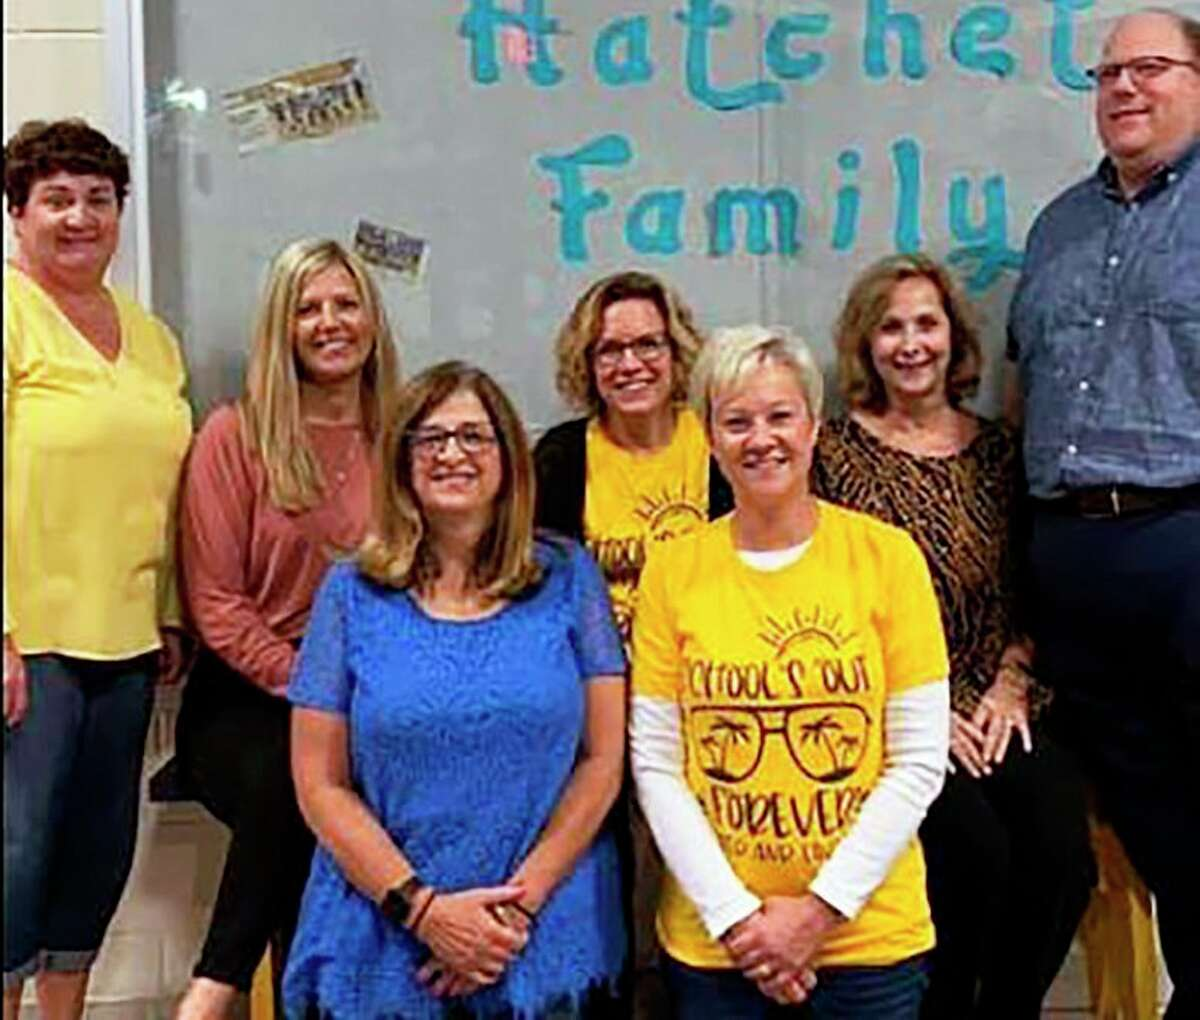 Among the Bad Axe teachers retiring over the past two years are, from left, front row, Laura Wolverton and Renee Chumbler, and back row, Tammy Lutz, Michelle McIntyre, Stephanie Anderson, Jan Neeb and Jim Osentoski. (Courtesy Photo)